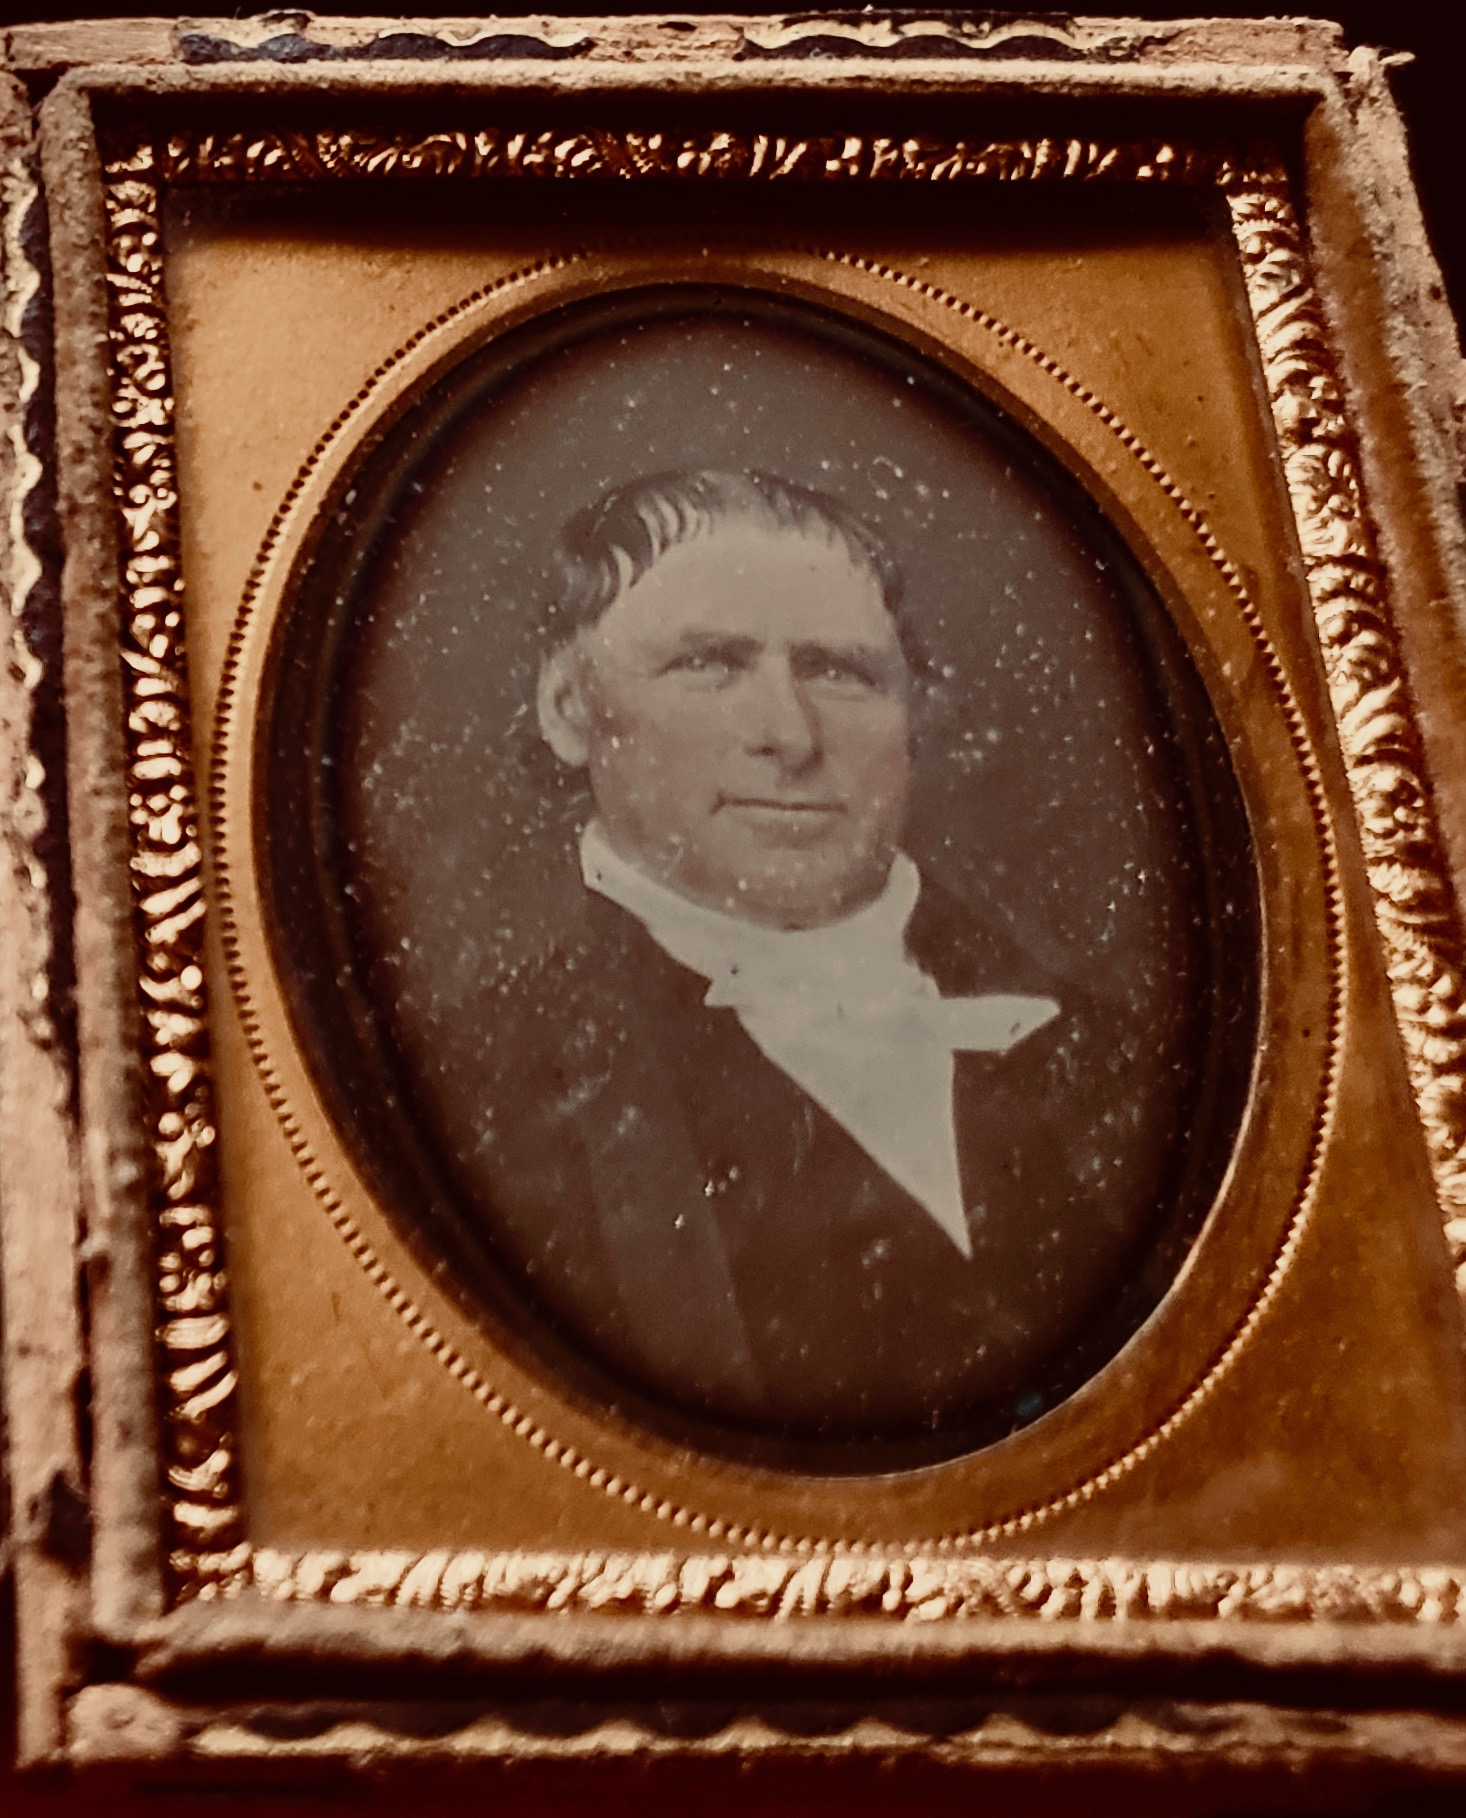 Newly discovered daguerreotype of Yardley Taylor of Loudoun County, Virginia, showing him in late middle age.